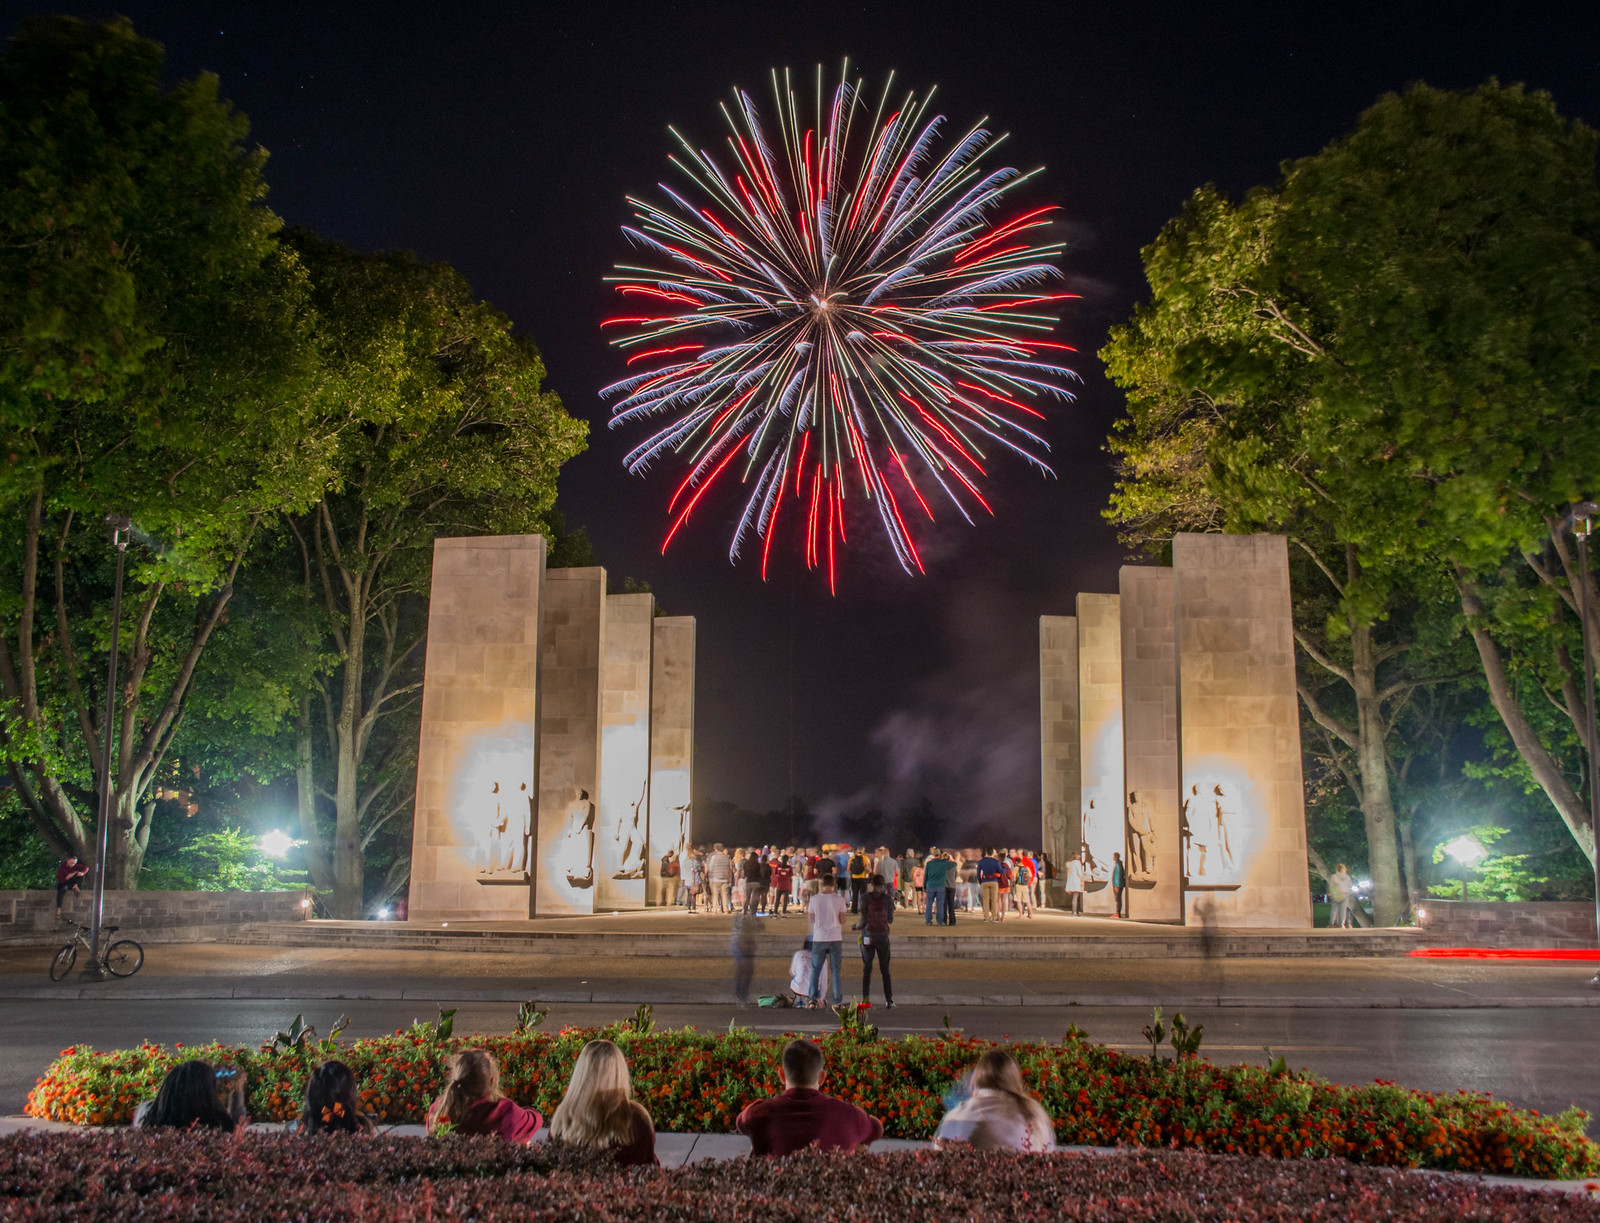 In this photo, onlookers watch from the pylons on Virginia Tech's campus as fireworks of red, white, and blue go off overhead.